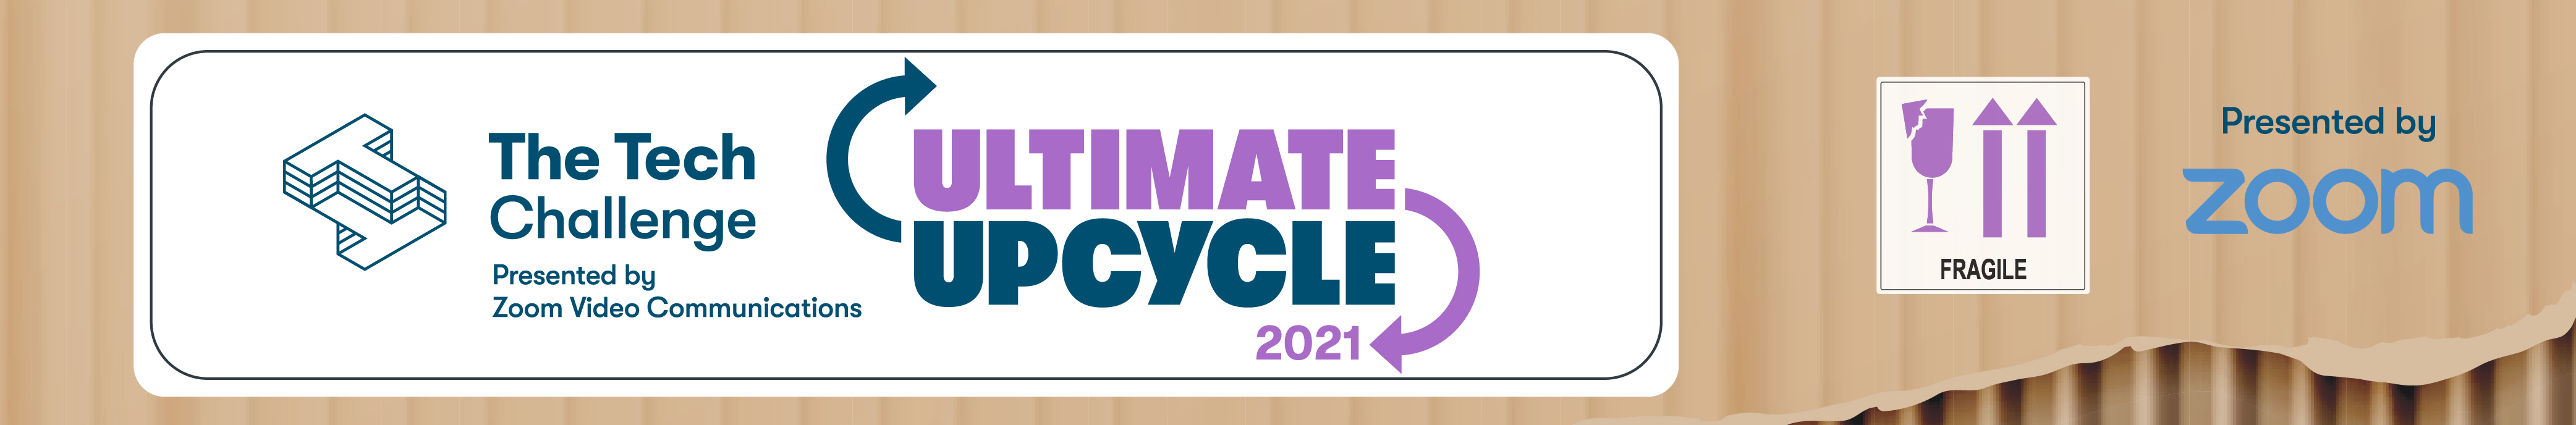 A banner image for The Tech Challenge, Ultimate Upcycle program.